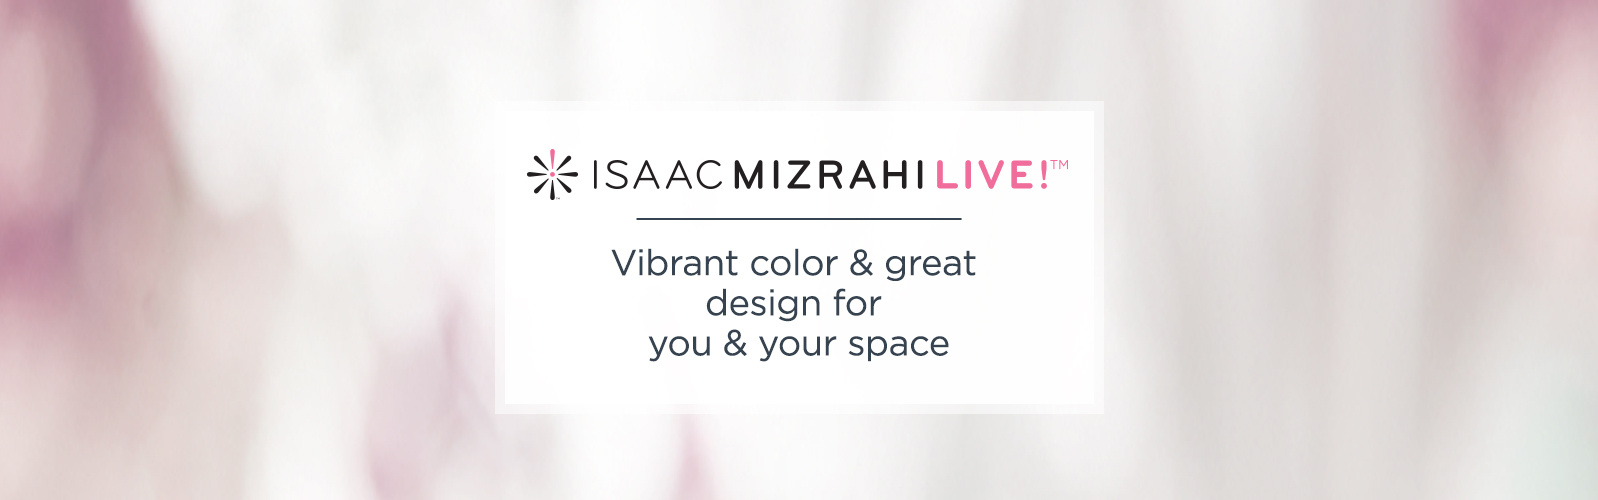 Isaac Mizrahi Live!(TM).  Vibrant color & great design for you & your space.